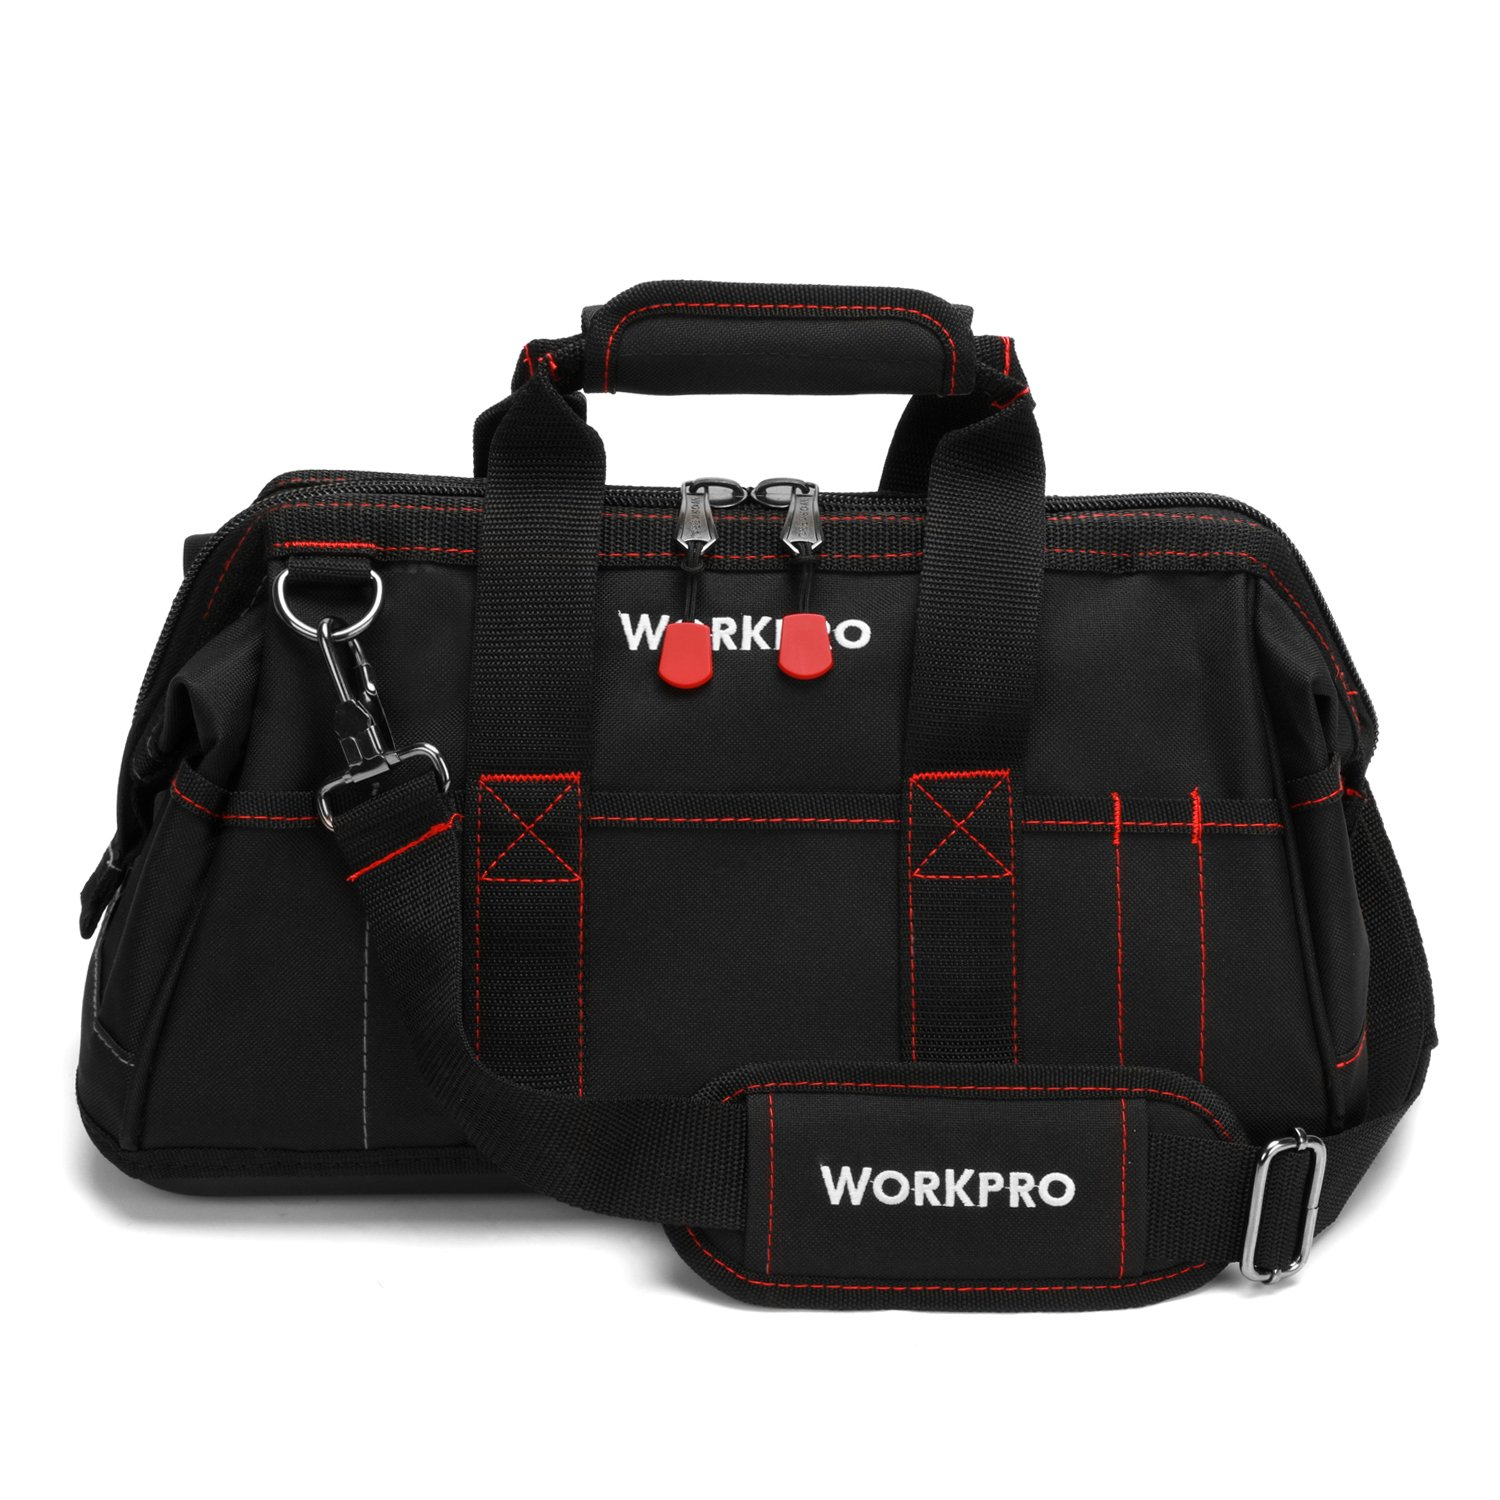 WORKPRO W081022A 16-inch Close Top Wide Mouth Tool Storage Bag with Water Proof Rubber Base